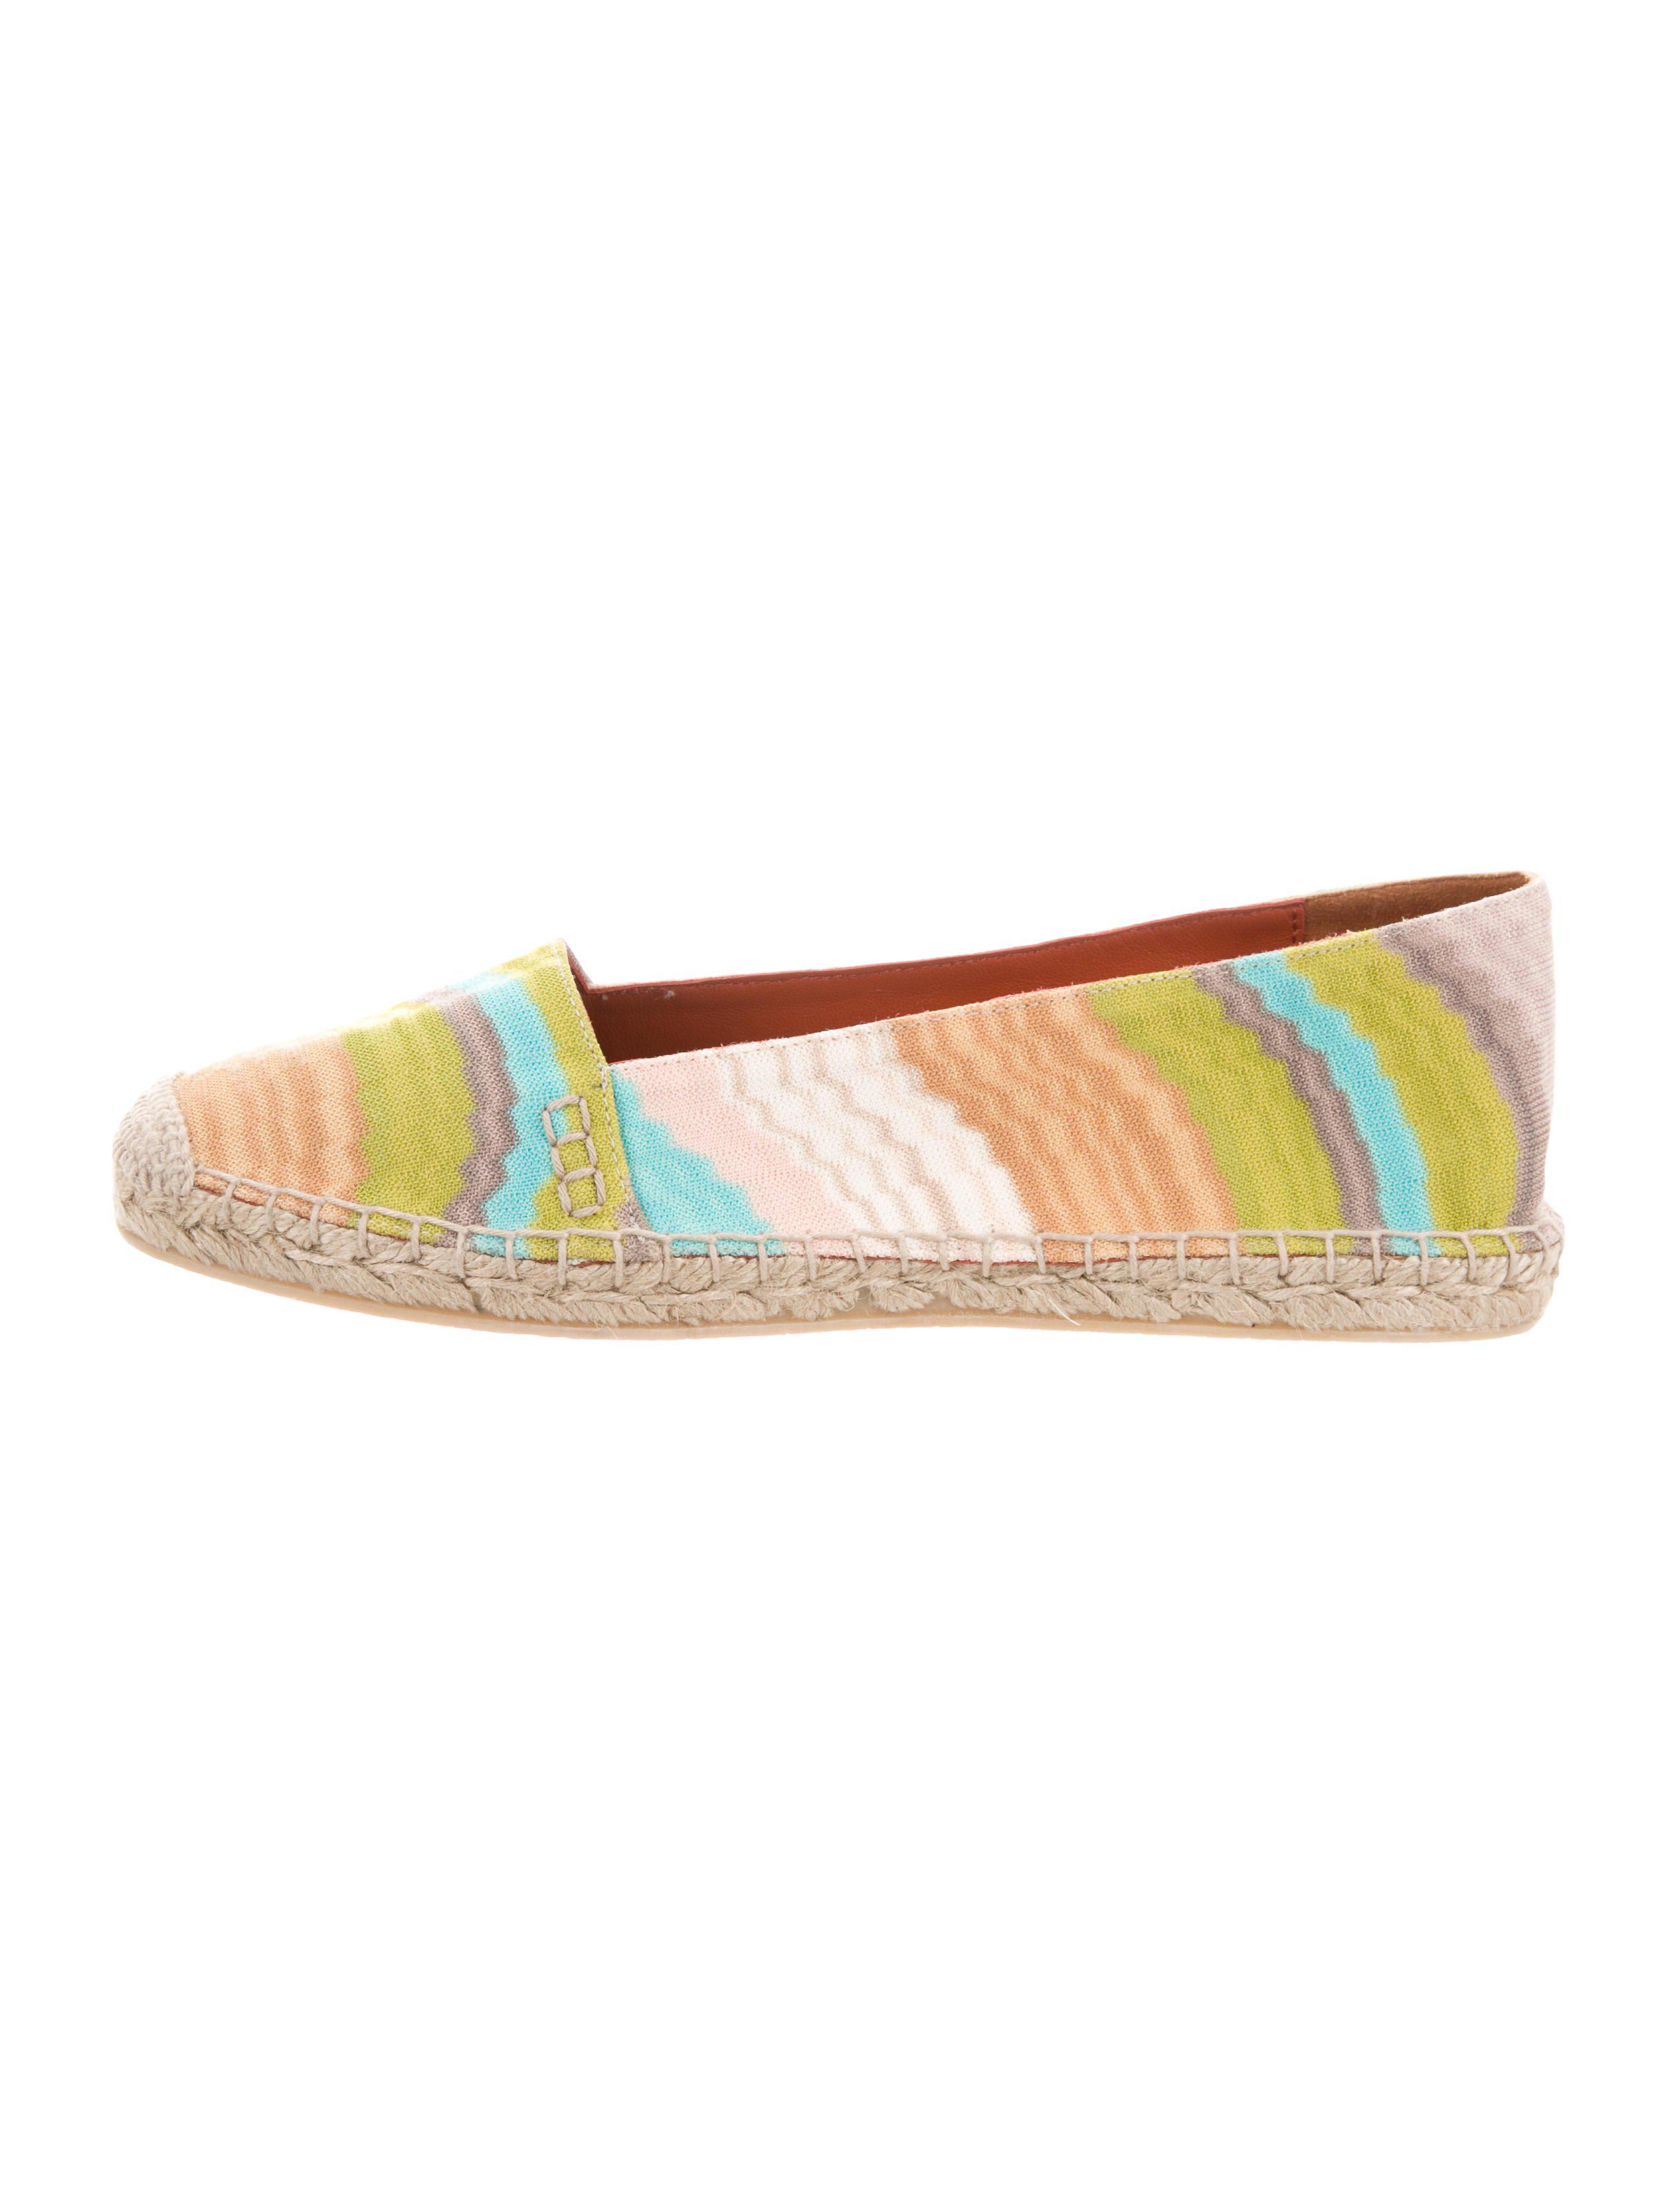 discount limited edition outlet from china Missoni Woven Espadrille Flats w/ Tags cheap sale low cost amazon gxaOXNen